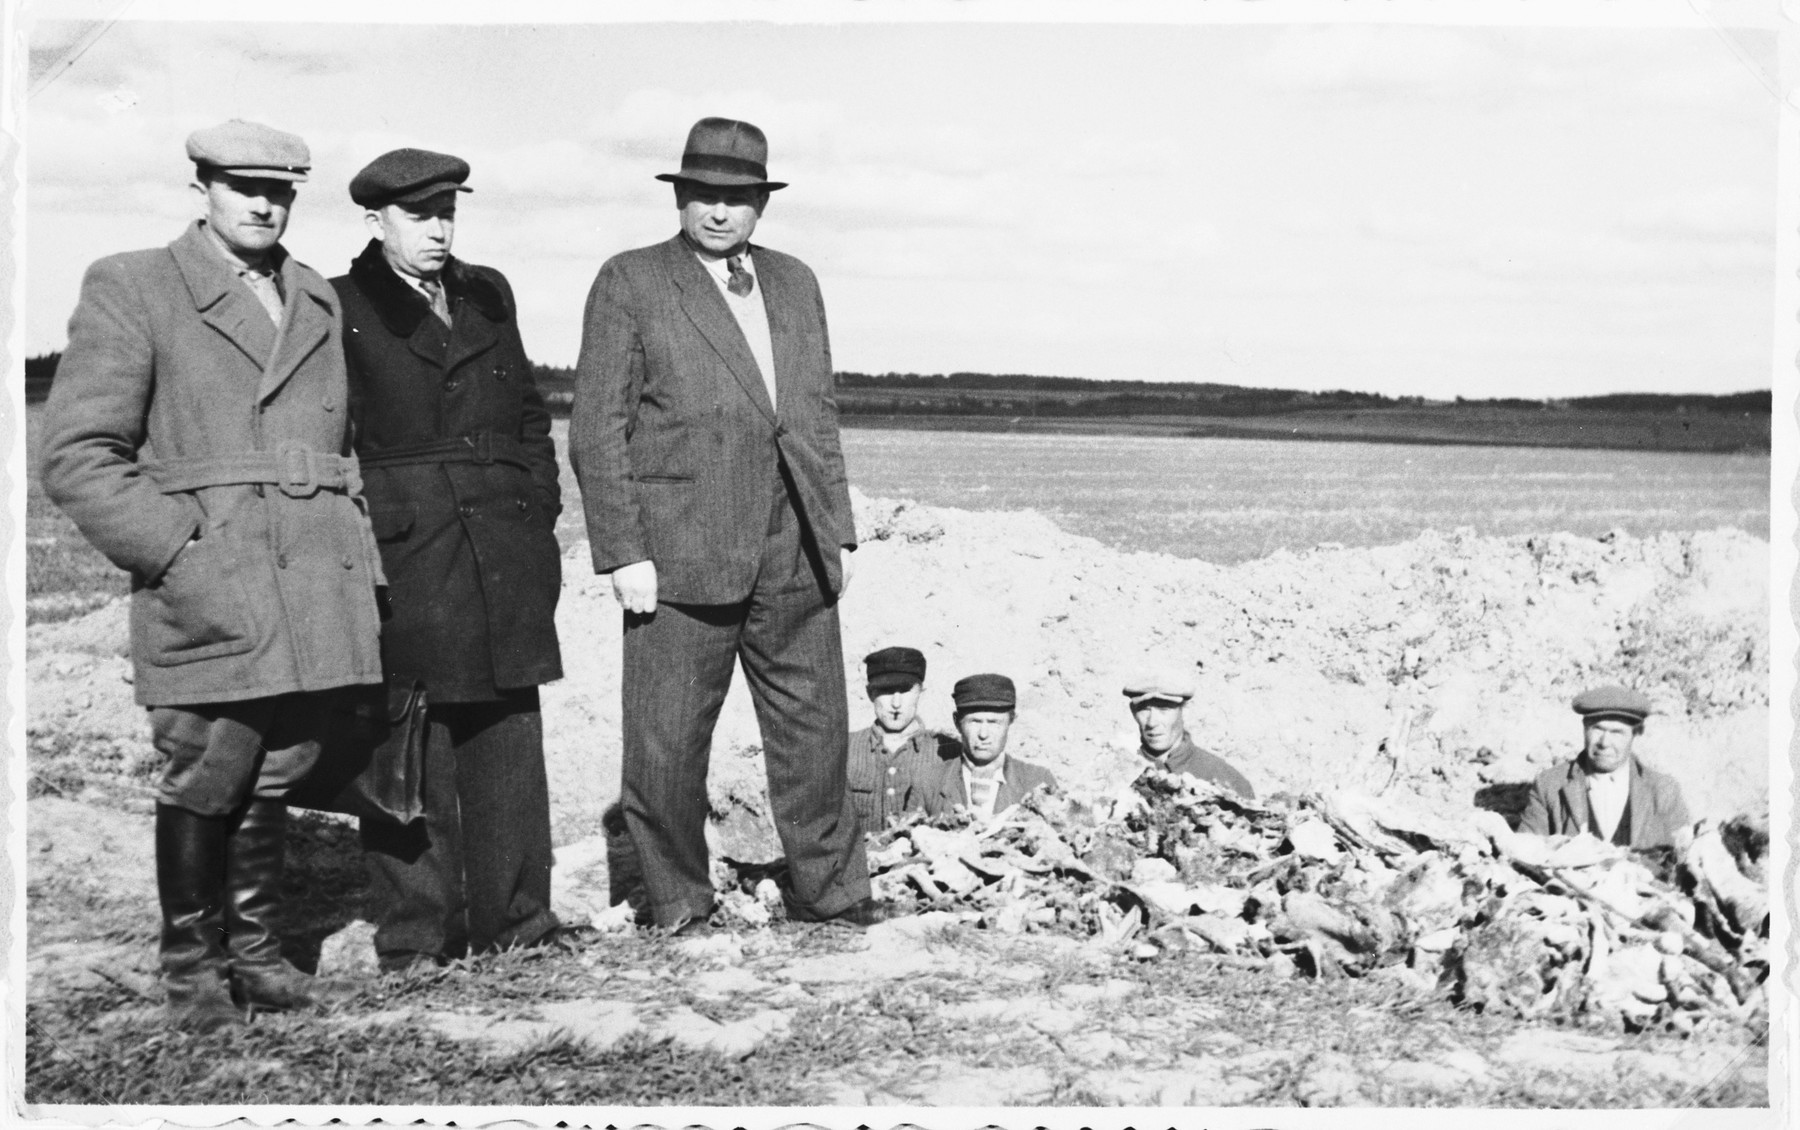 Jewish survivors and Polish workers exhume the bodies of Jews killed during the liquidation of Siemiatycze so that they can be properly reburied at the entrance to the Jewish cemetery.  Yehoshua Kejles is standing at the right.  His father, Efraim Kejles, was among those murdered.